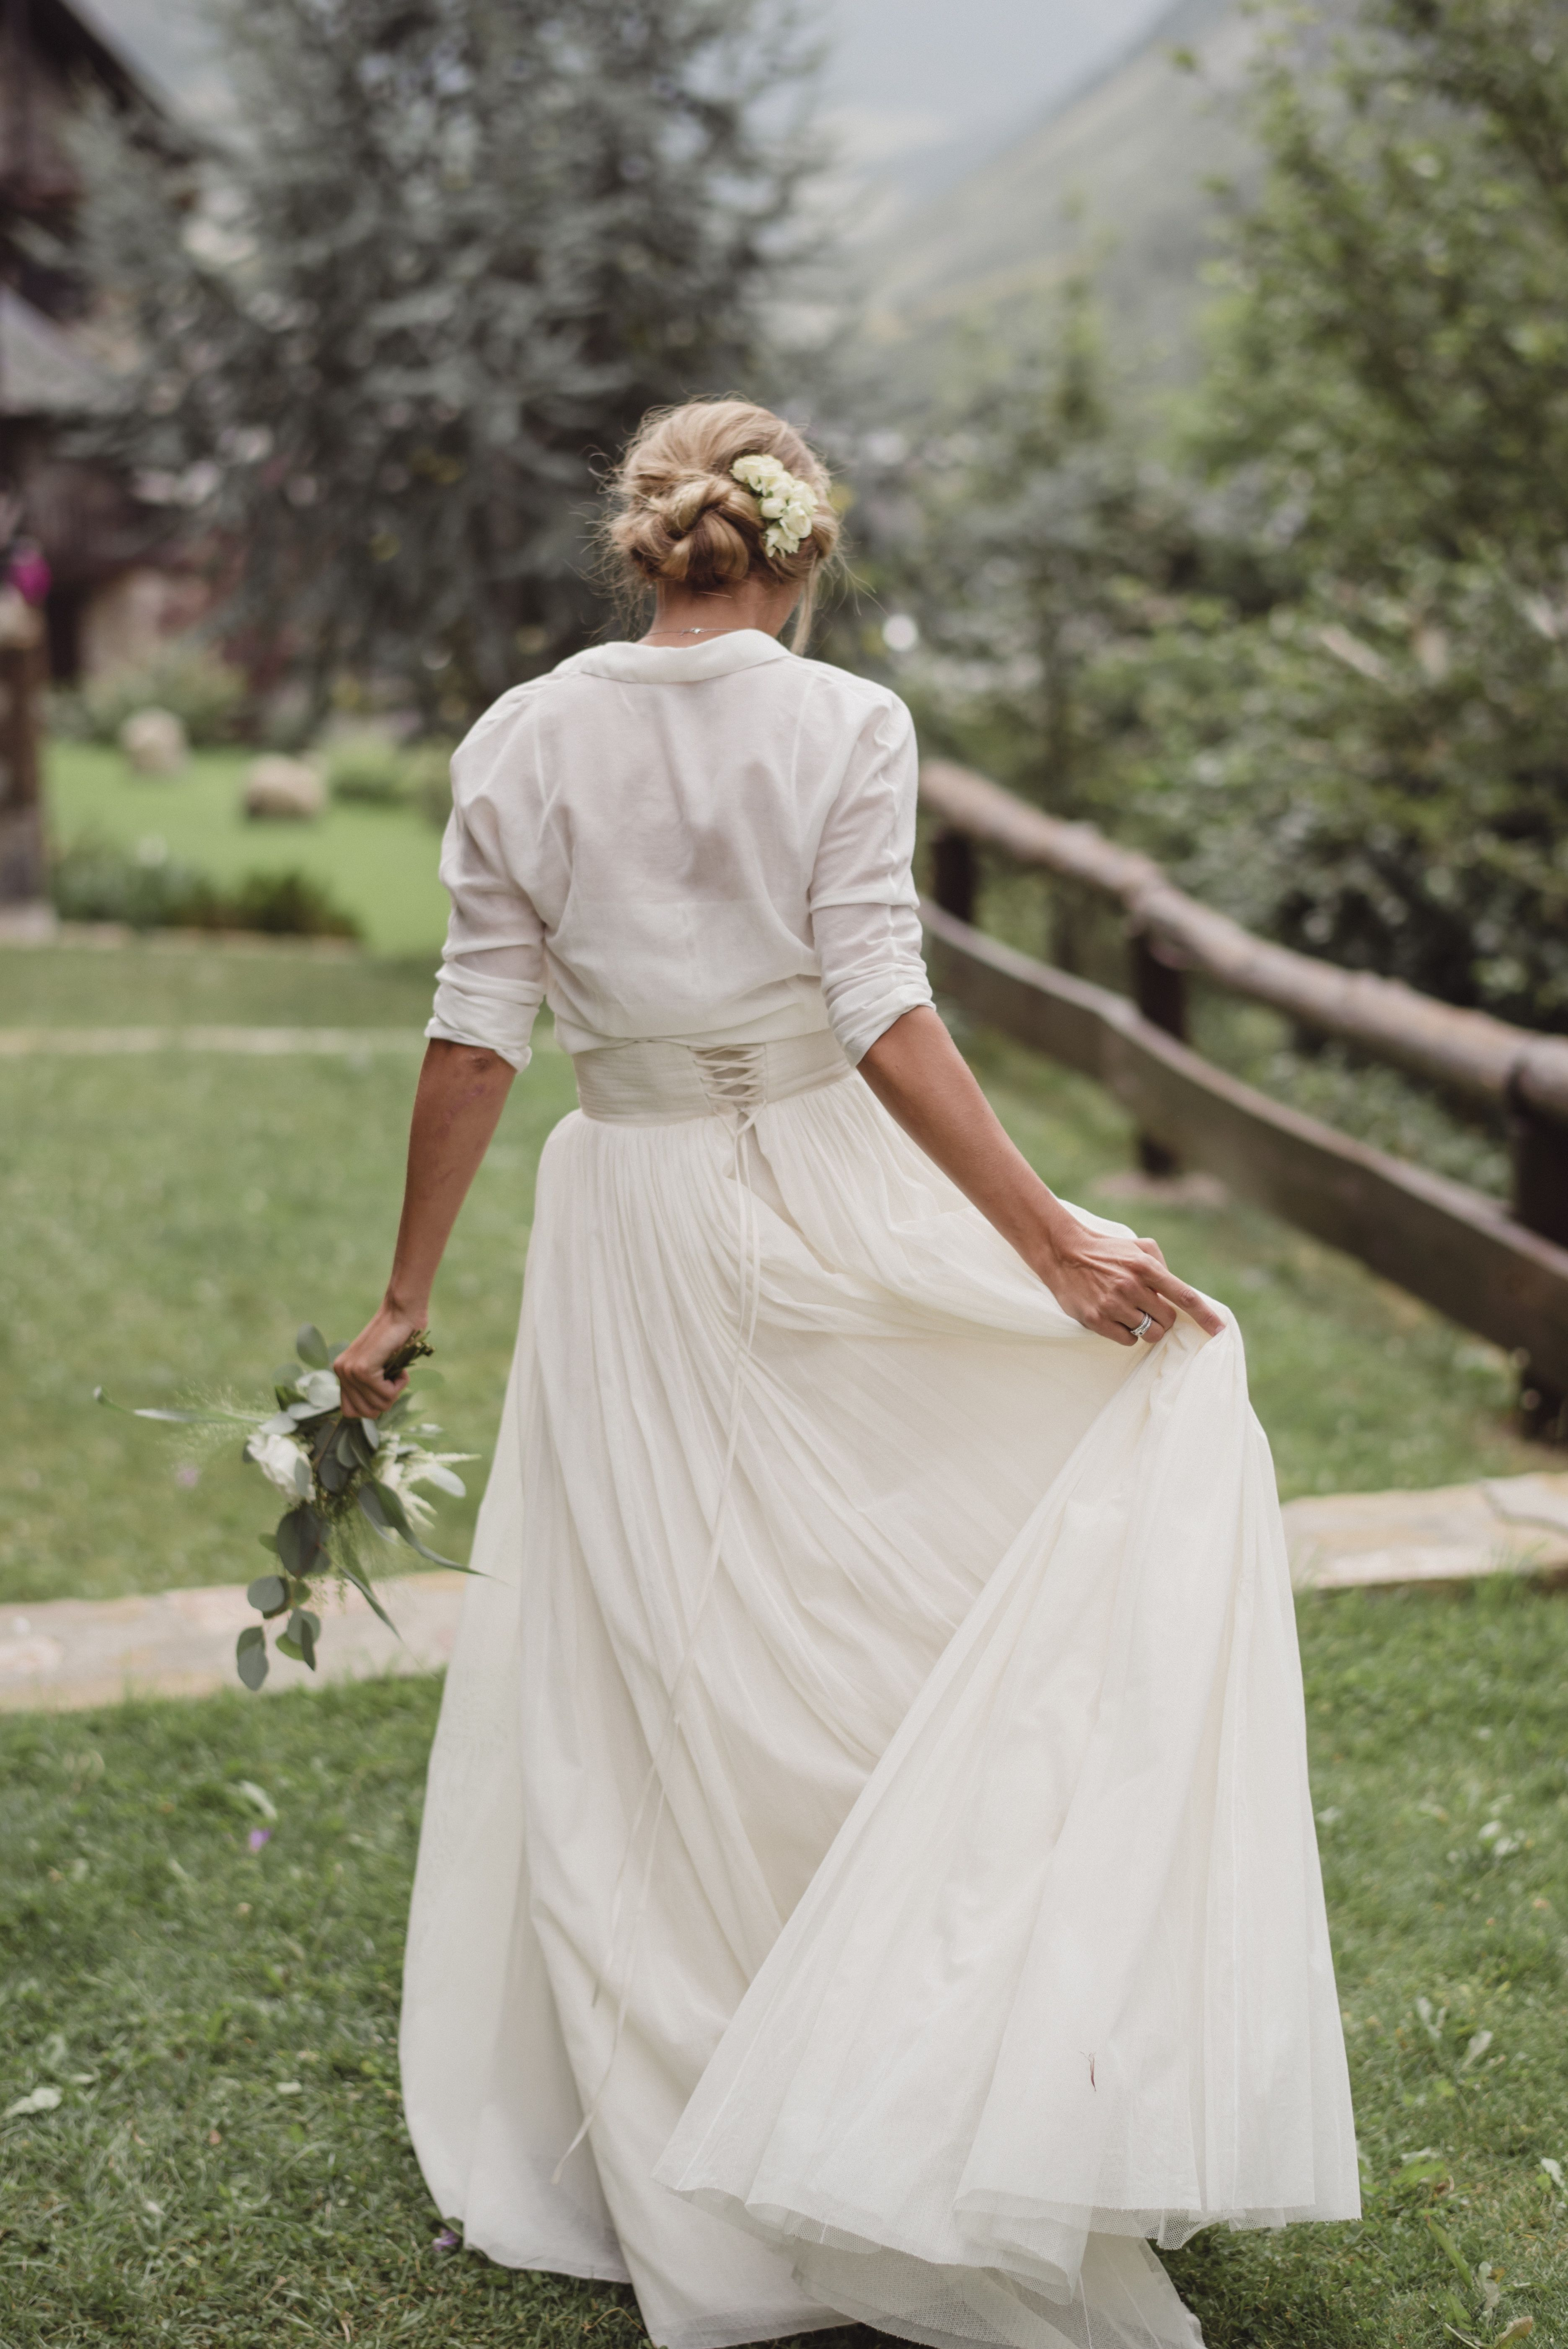 Carla using a cortana bridal collection dress thank you for sharing